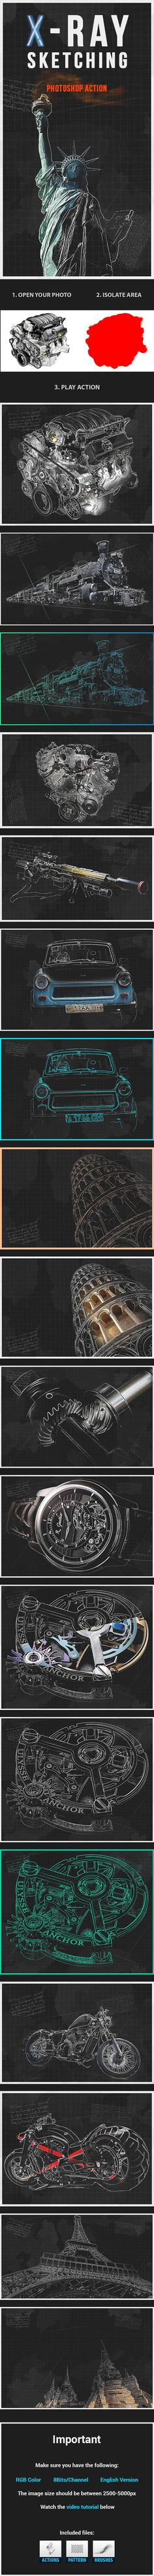 X-Ray Sketching Photoshop Action